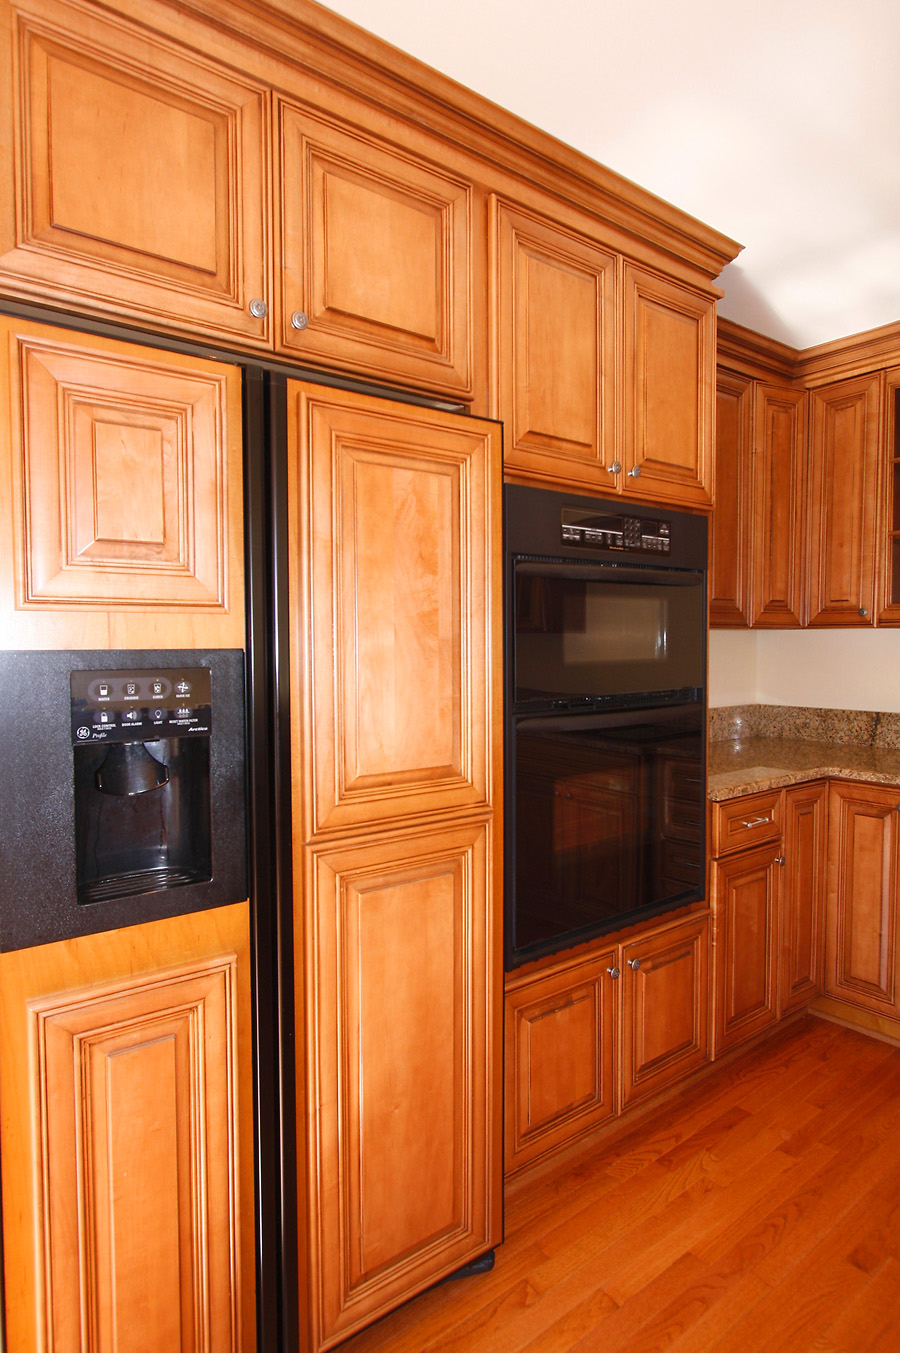 Modern Classic Kitchen with Thomasville Cabinets with Coffee Machine and oven for smart kitchen furniture ideas